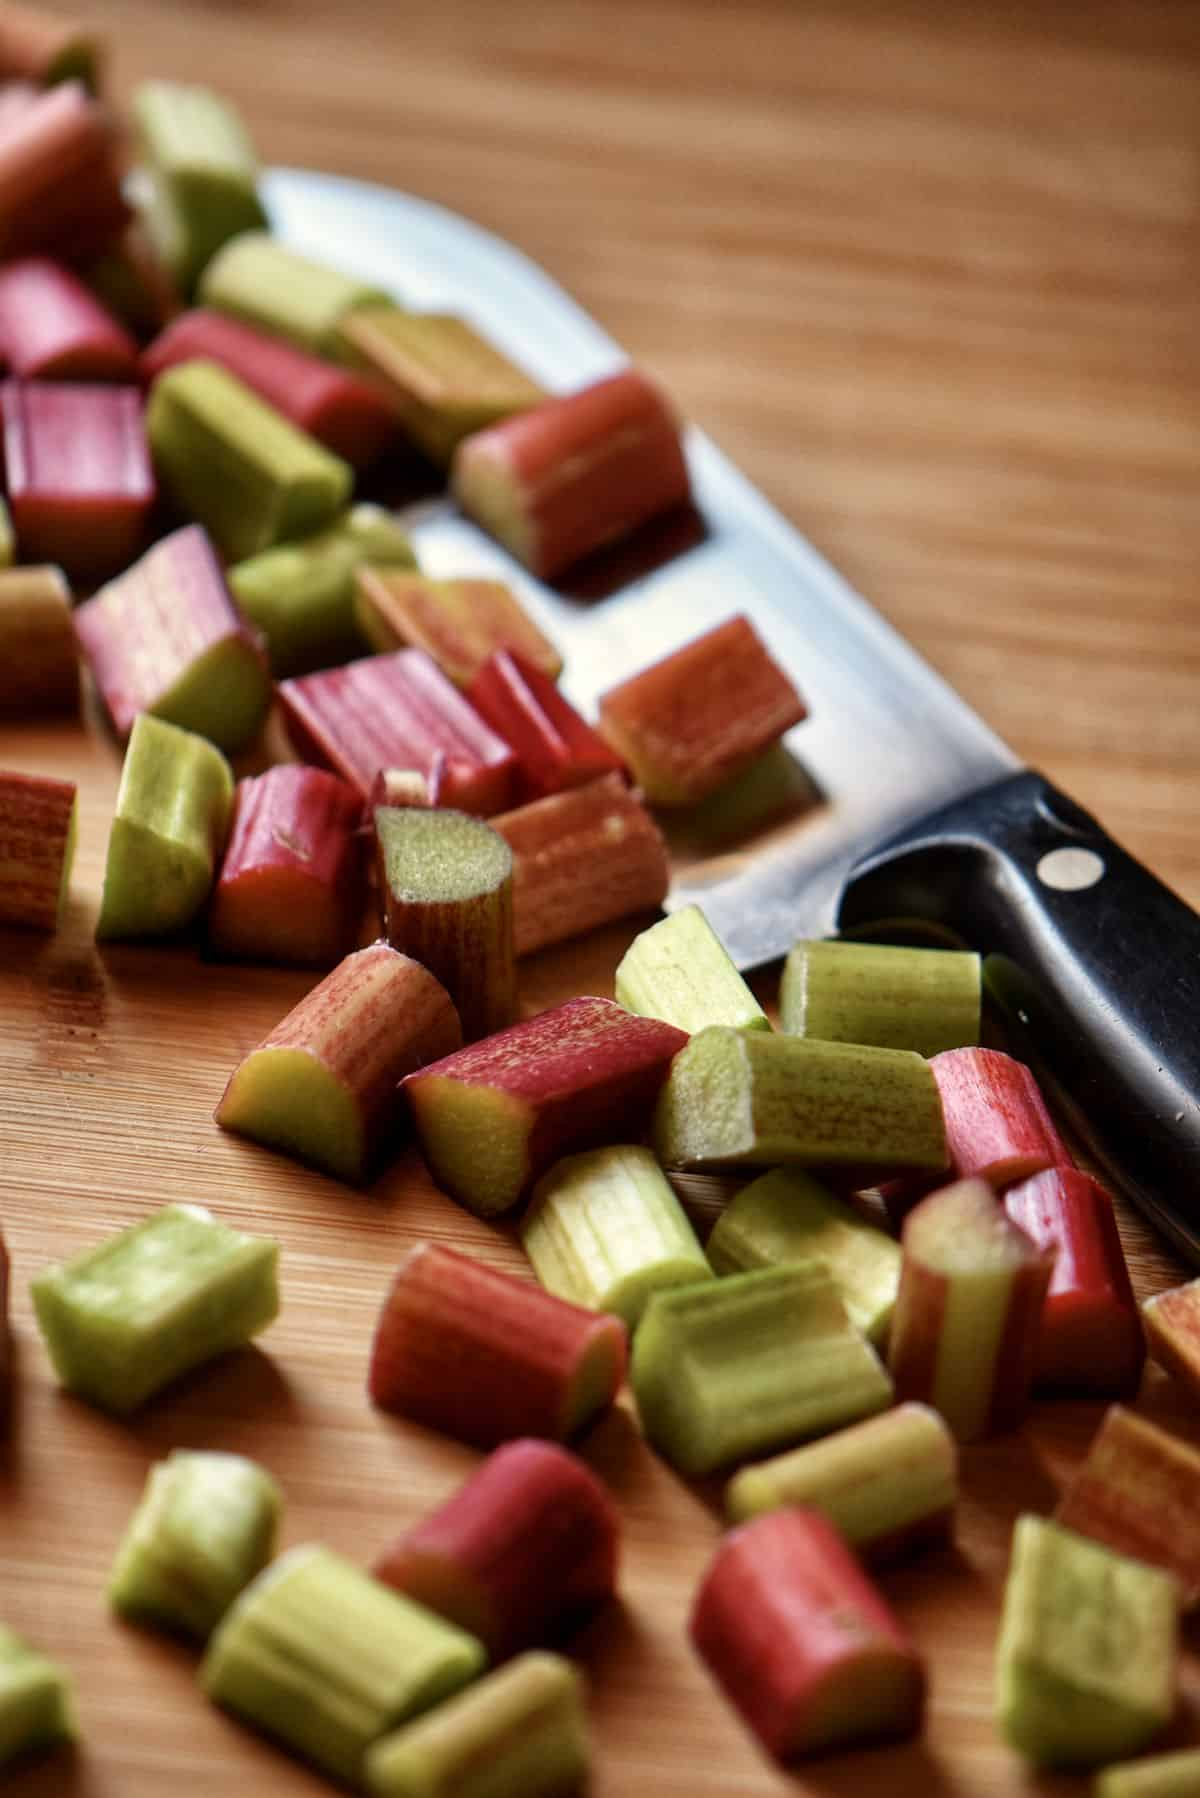 Diced rhubarb on a wooden board, next to a knife.